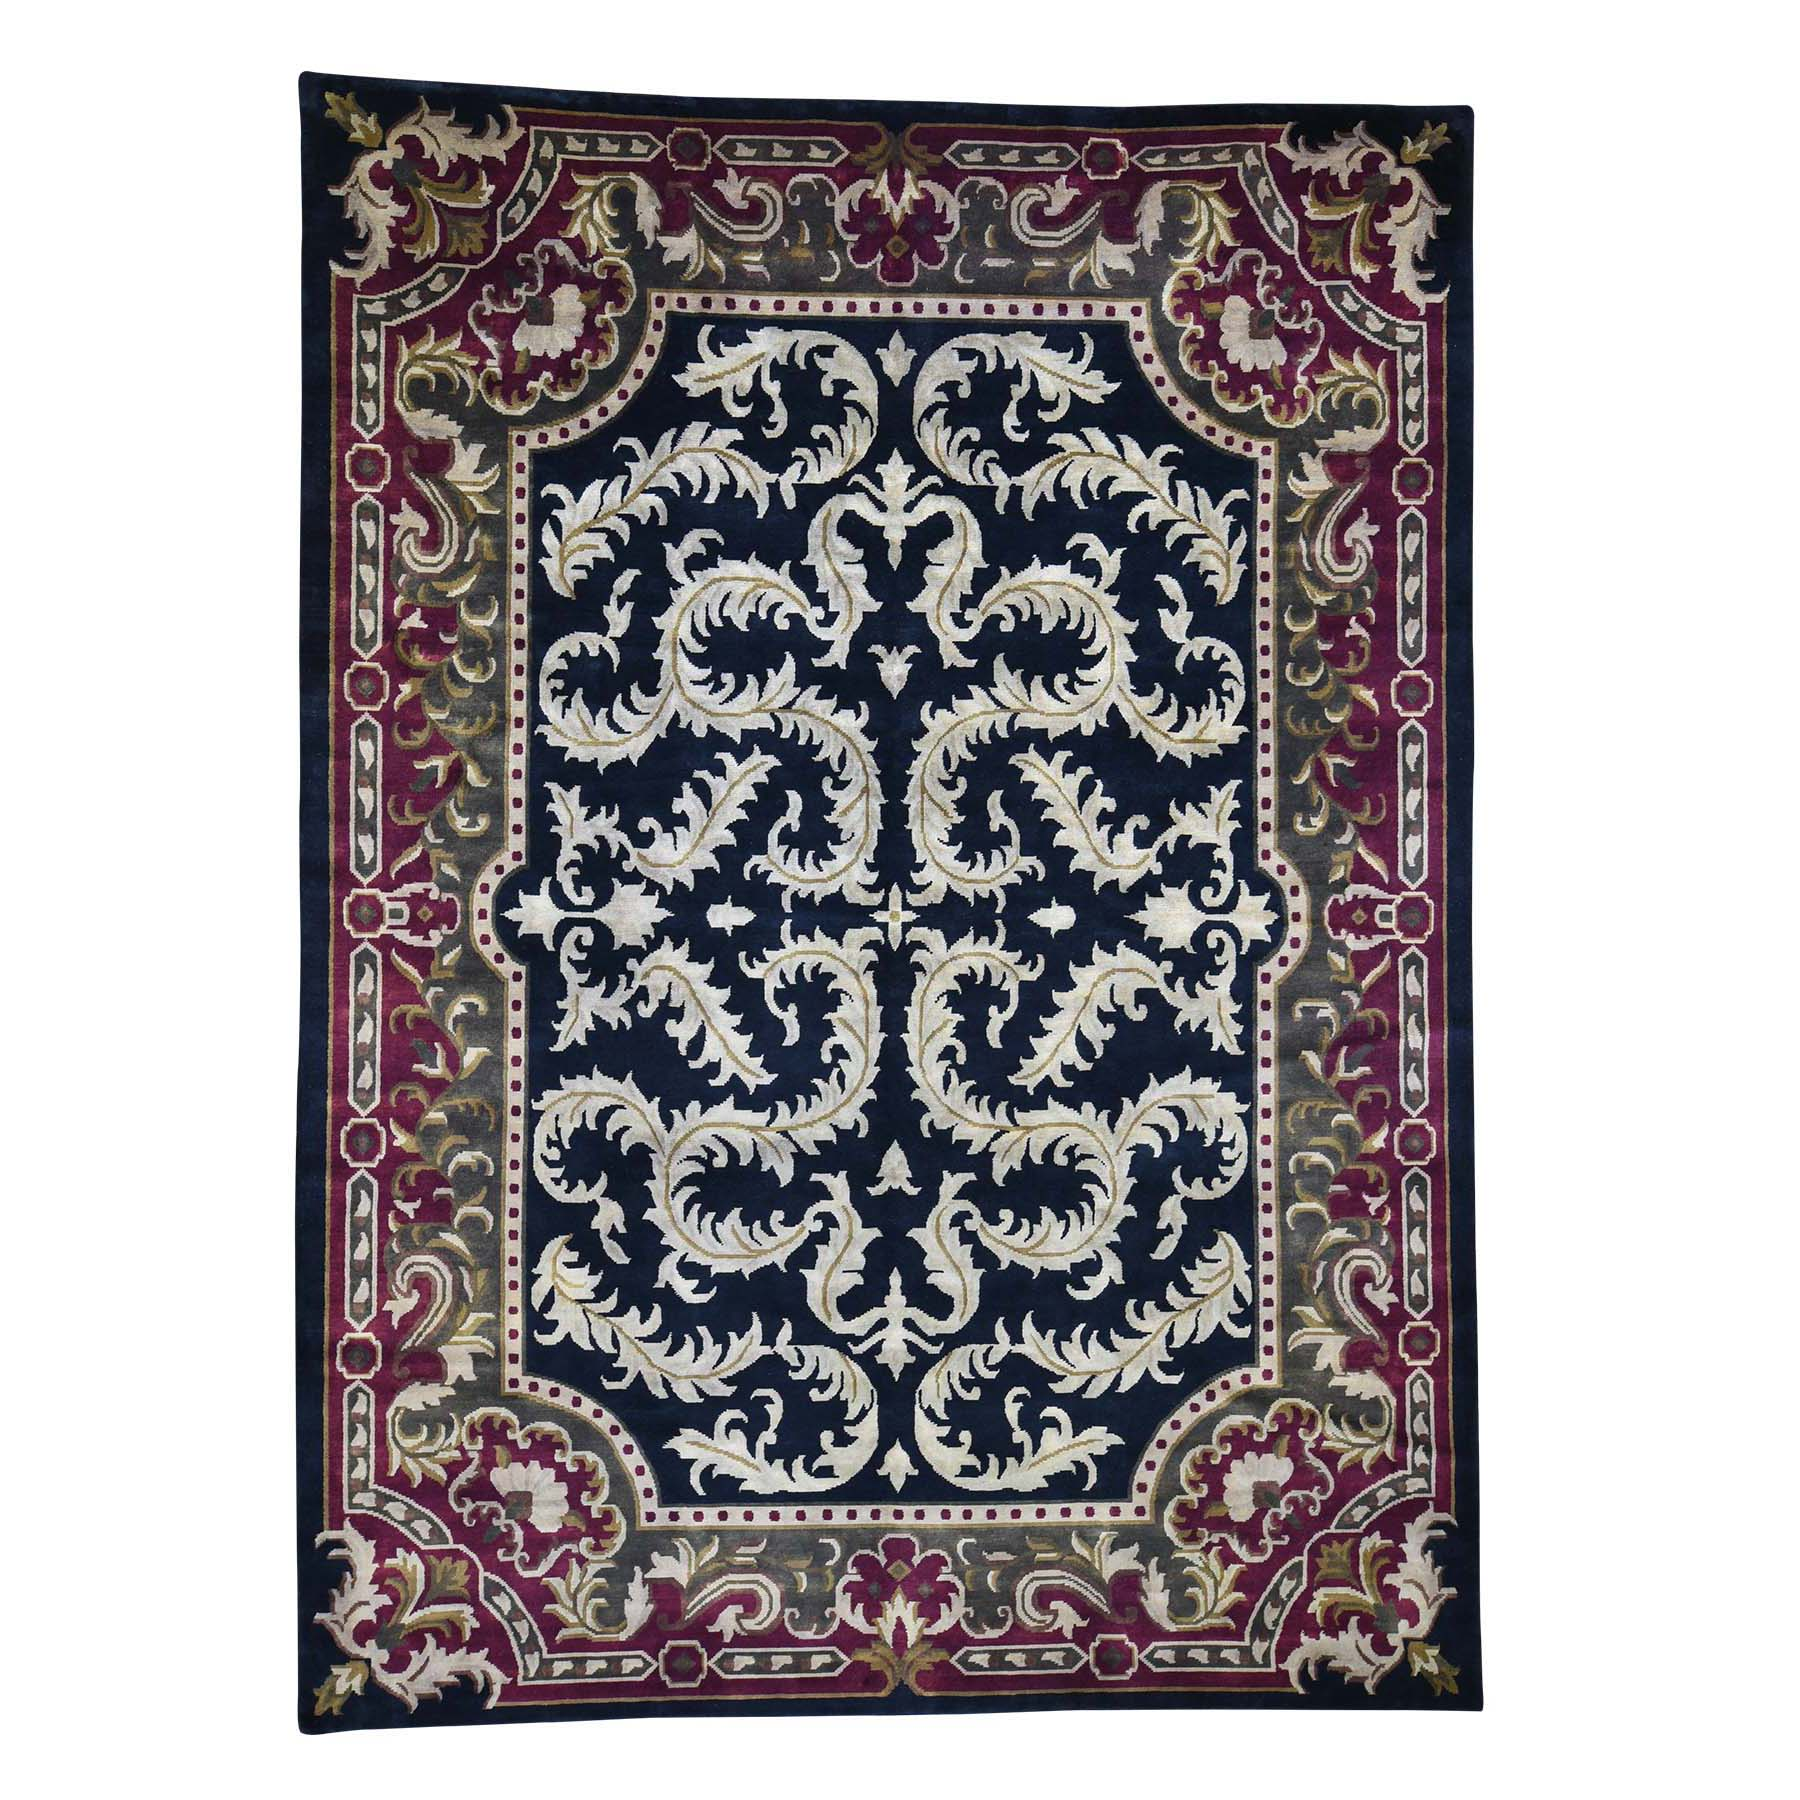 Deep discounted Collection Hand Knotted Black Rug No: 192996